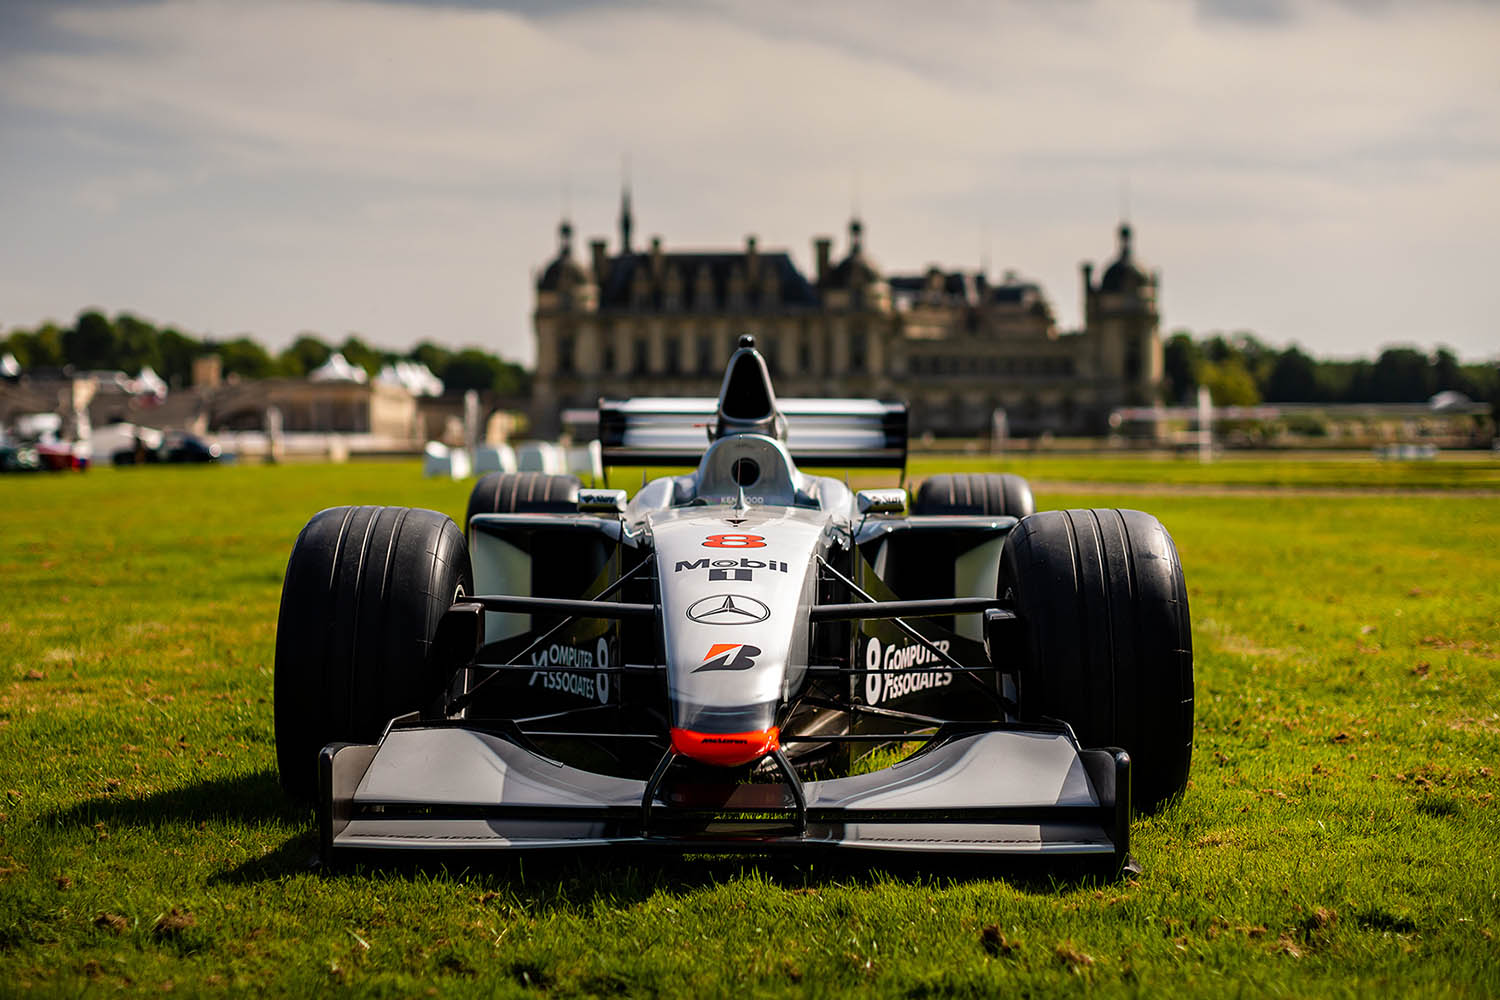 2019_PeterAuto_Chantilly_AlexisGoure_0046.jpg